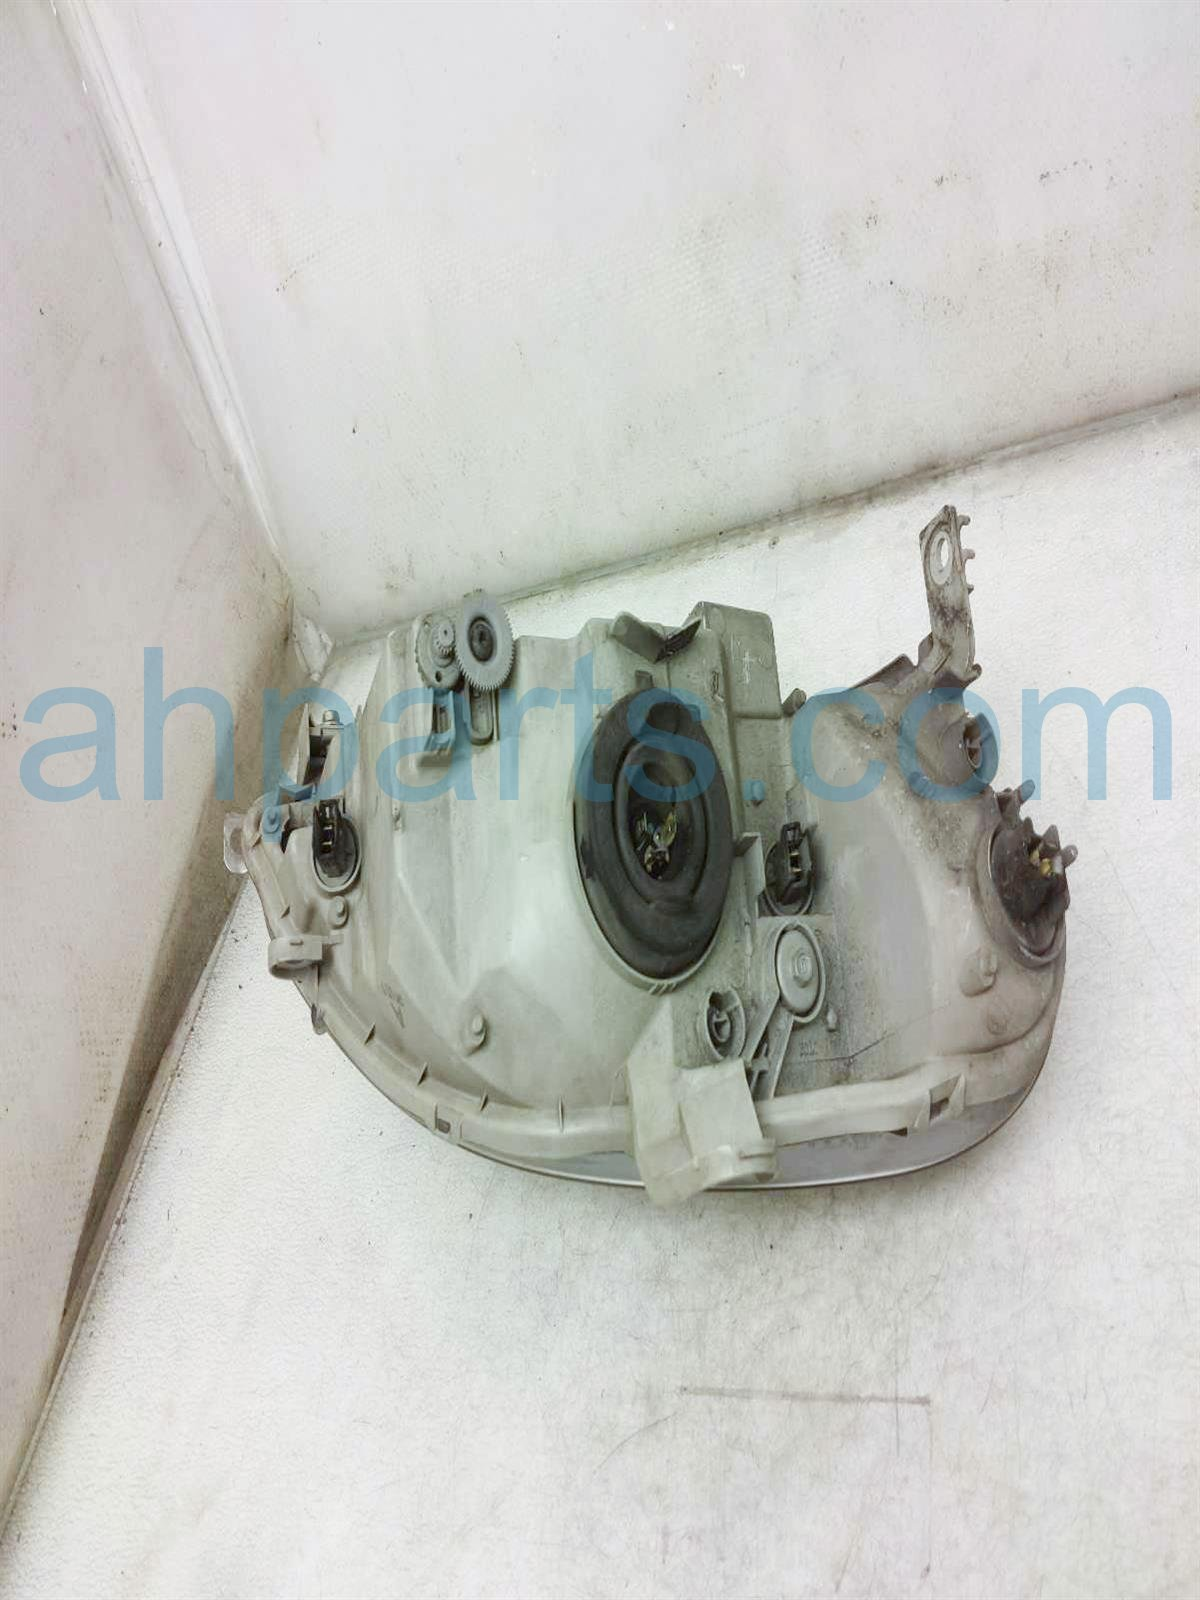 2003 Honda Insight Headlight Driver Headlamp / Light   Needs Polish 33151 S3Y A01 Replacement